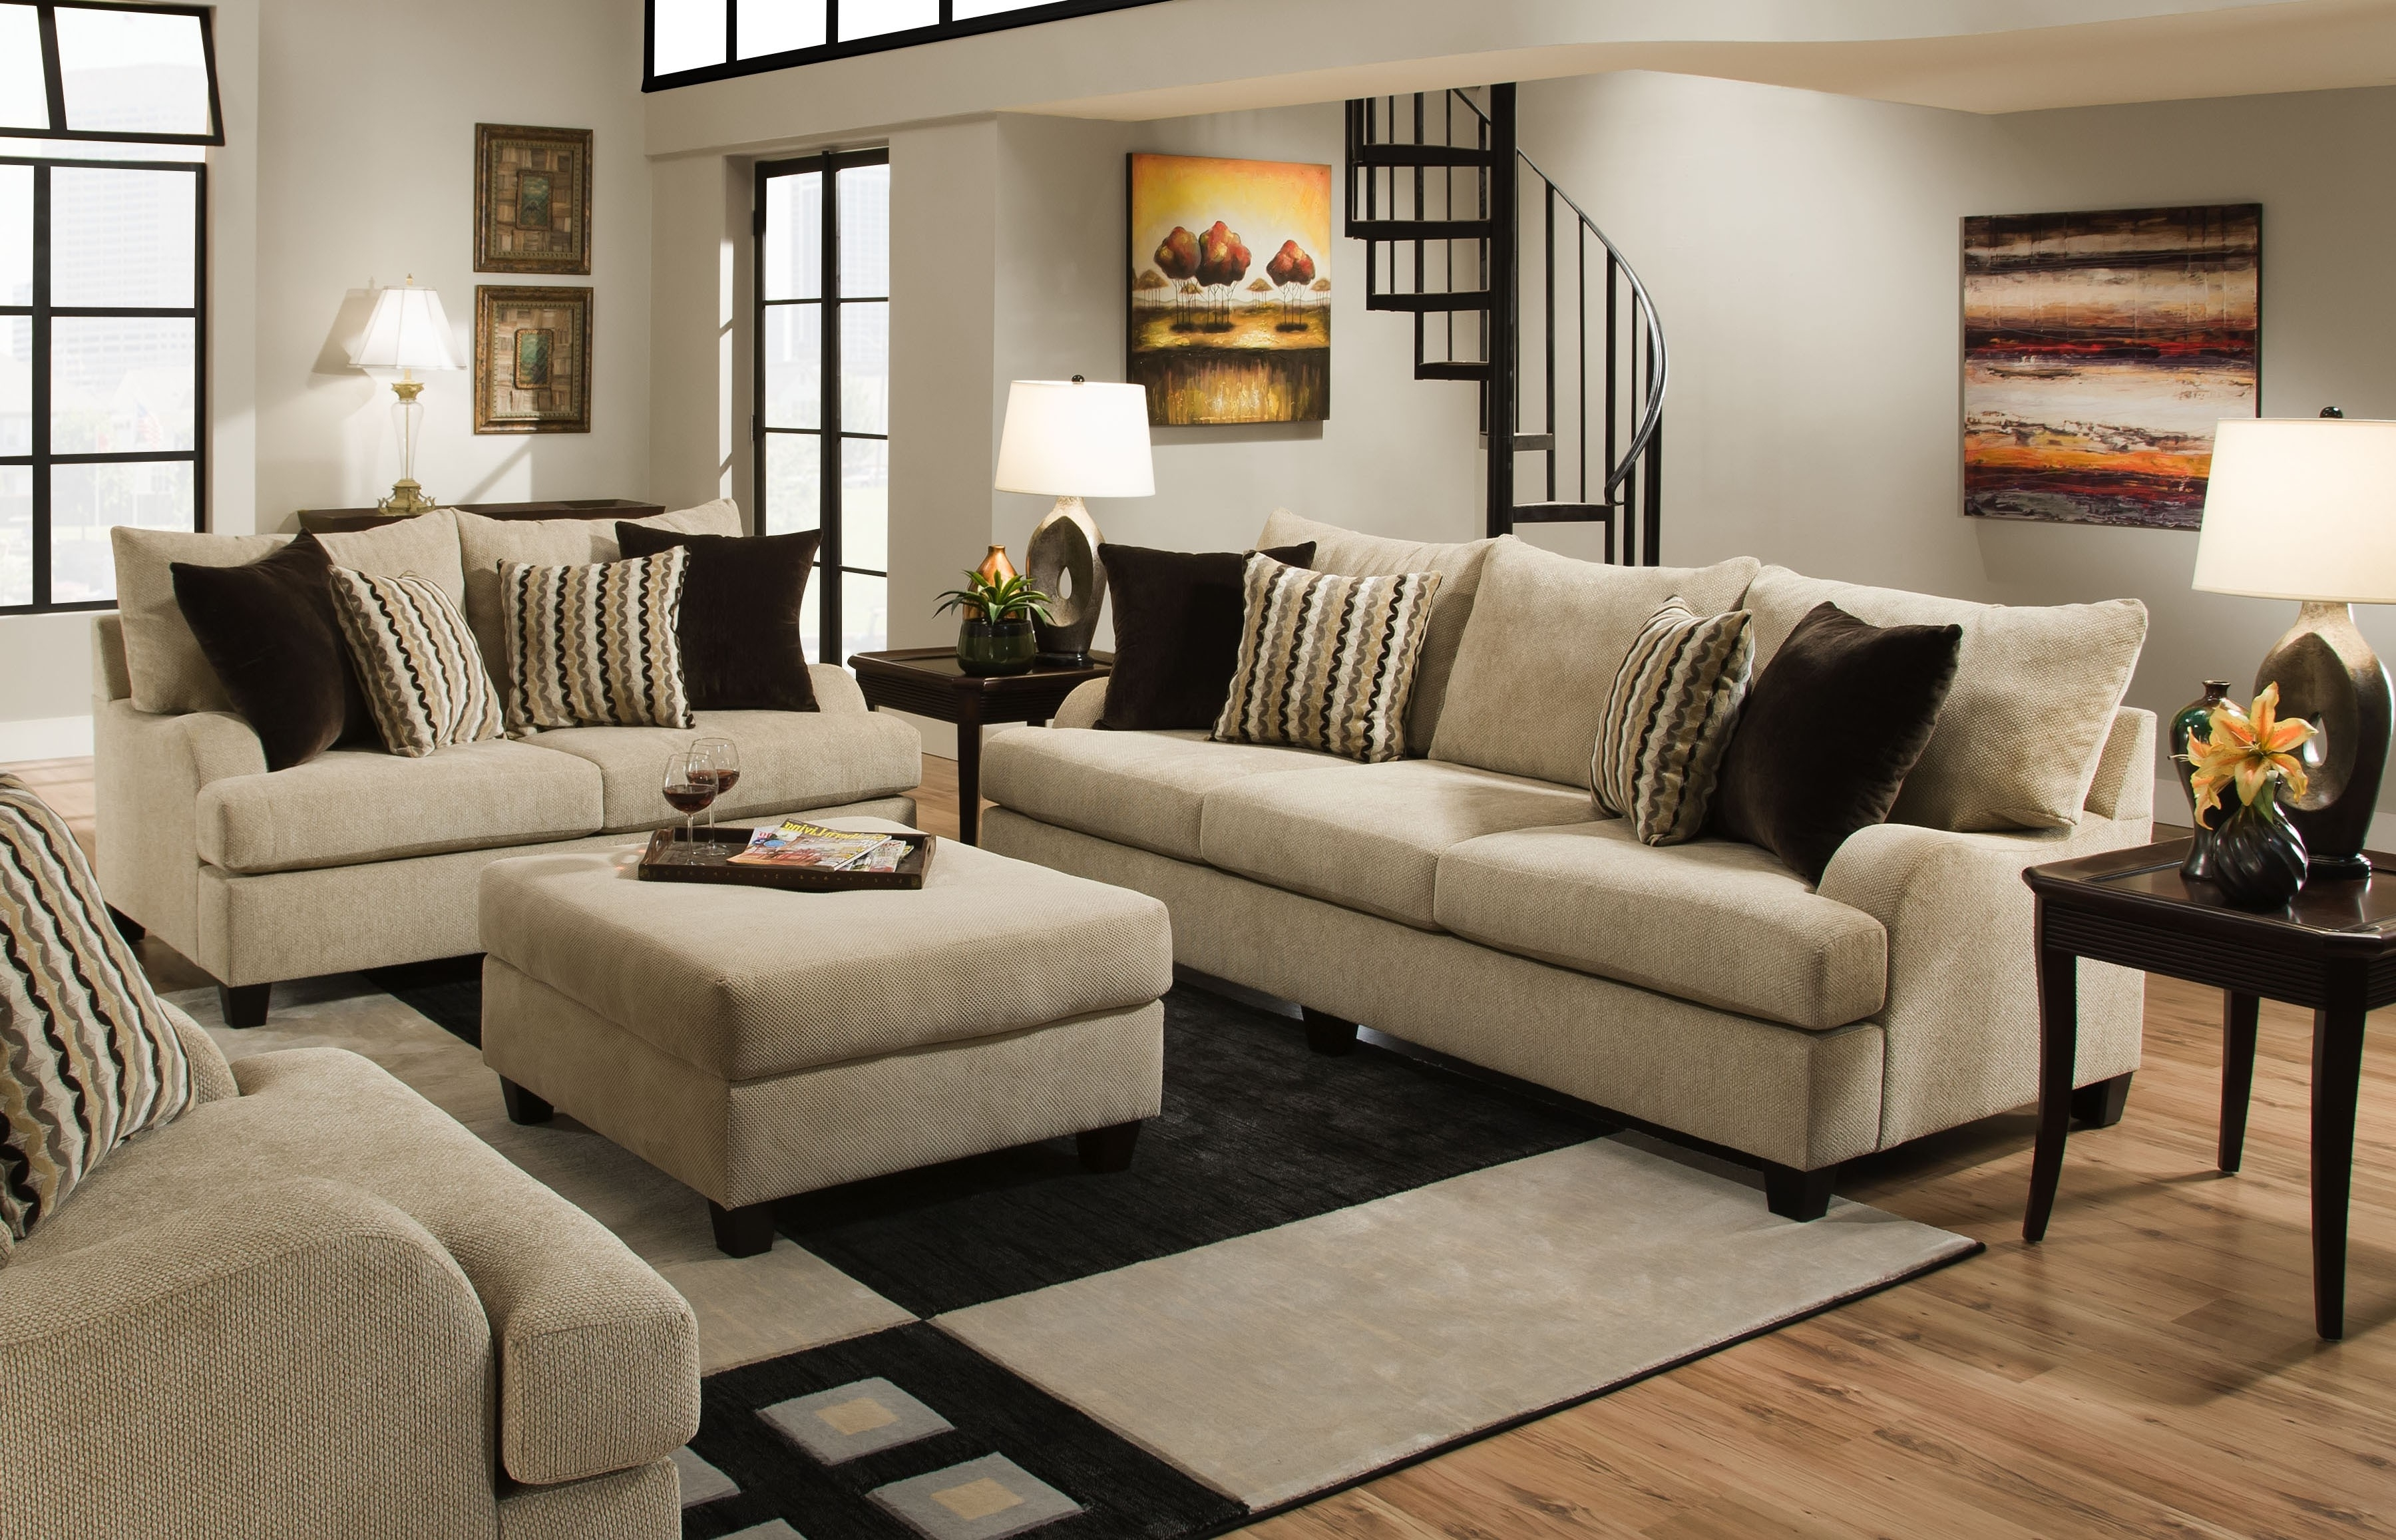 Well Liked Orange County Sofas Within Trinidad Chenile Living Room Set – Sofa & Loveseat (View 15 of 15)